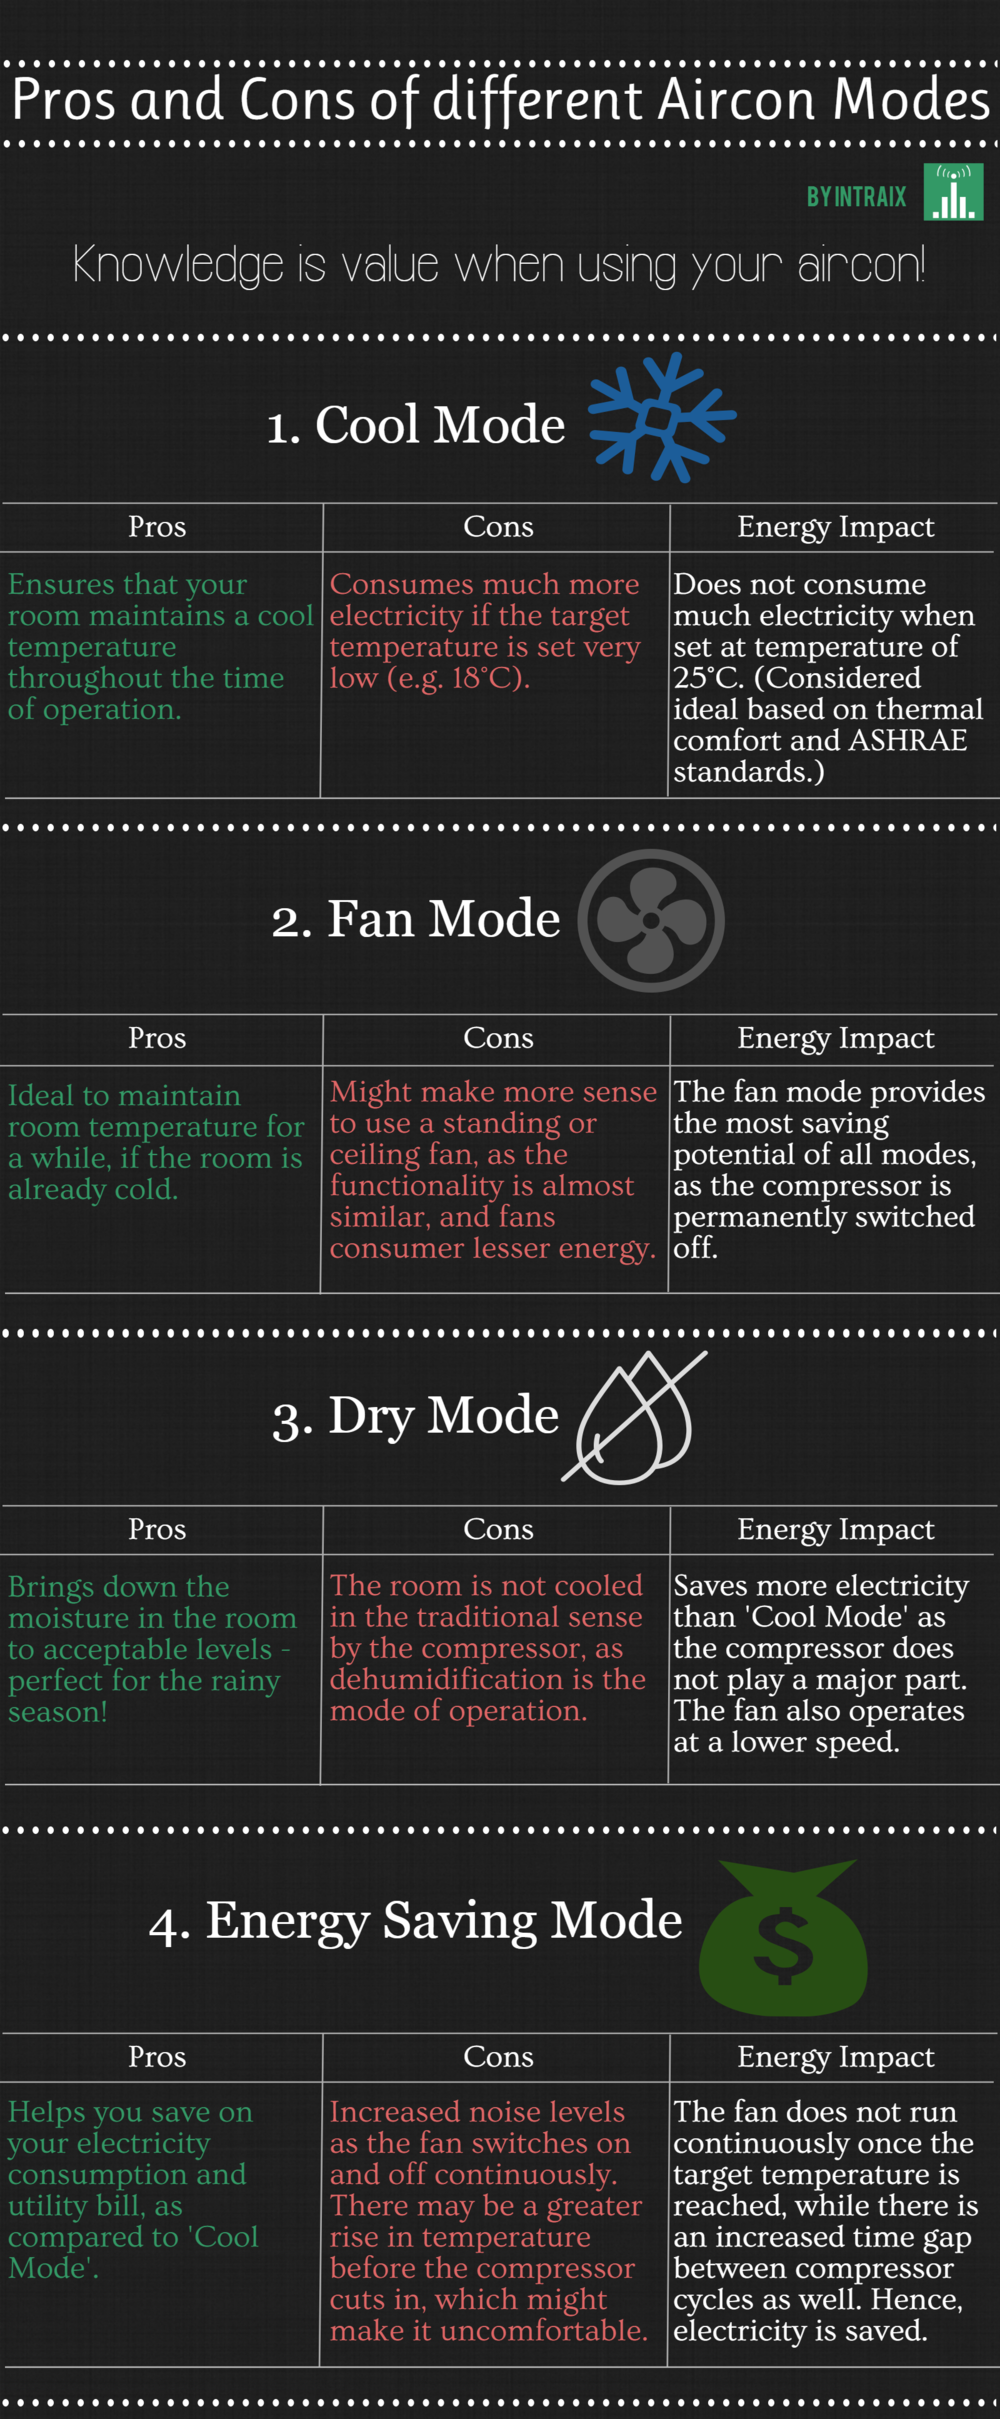 Pros and cons of aircon modes